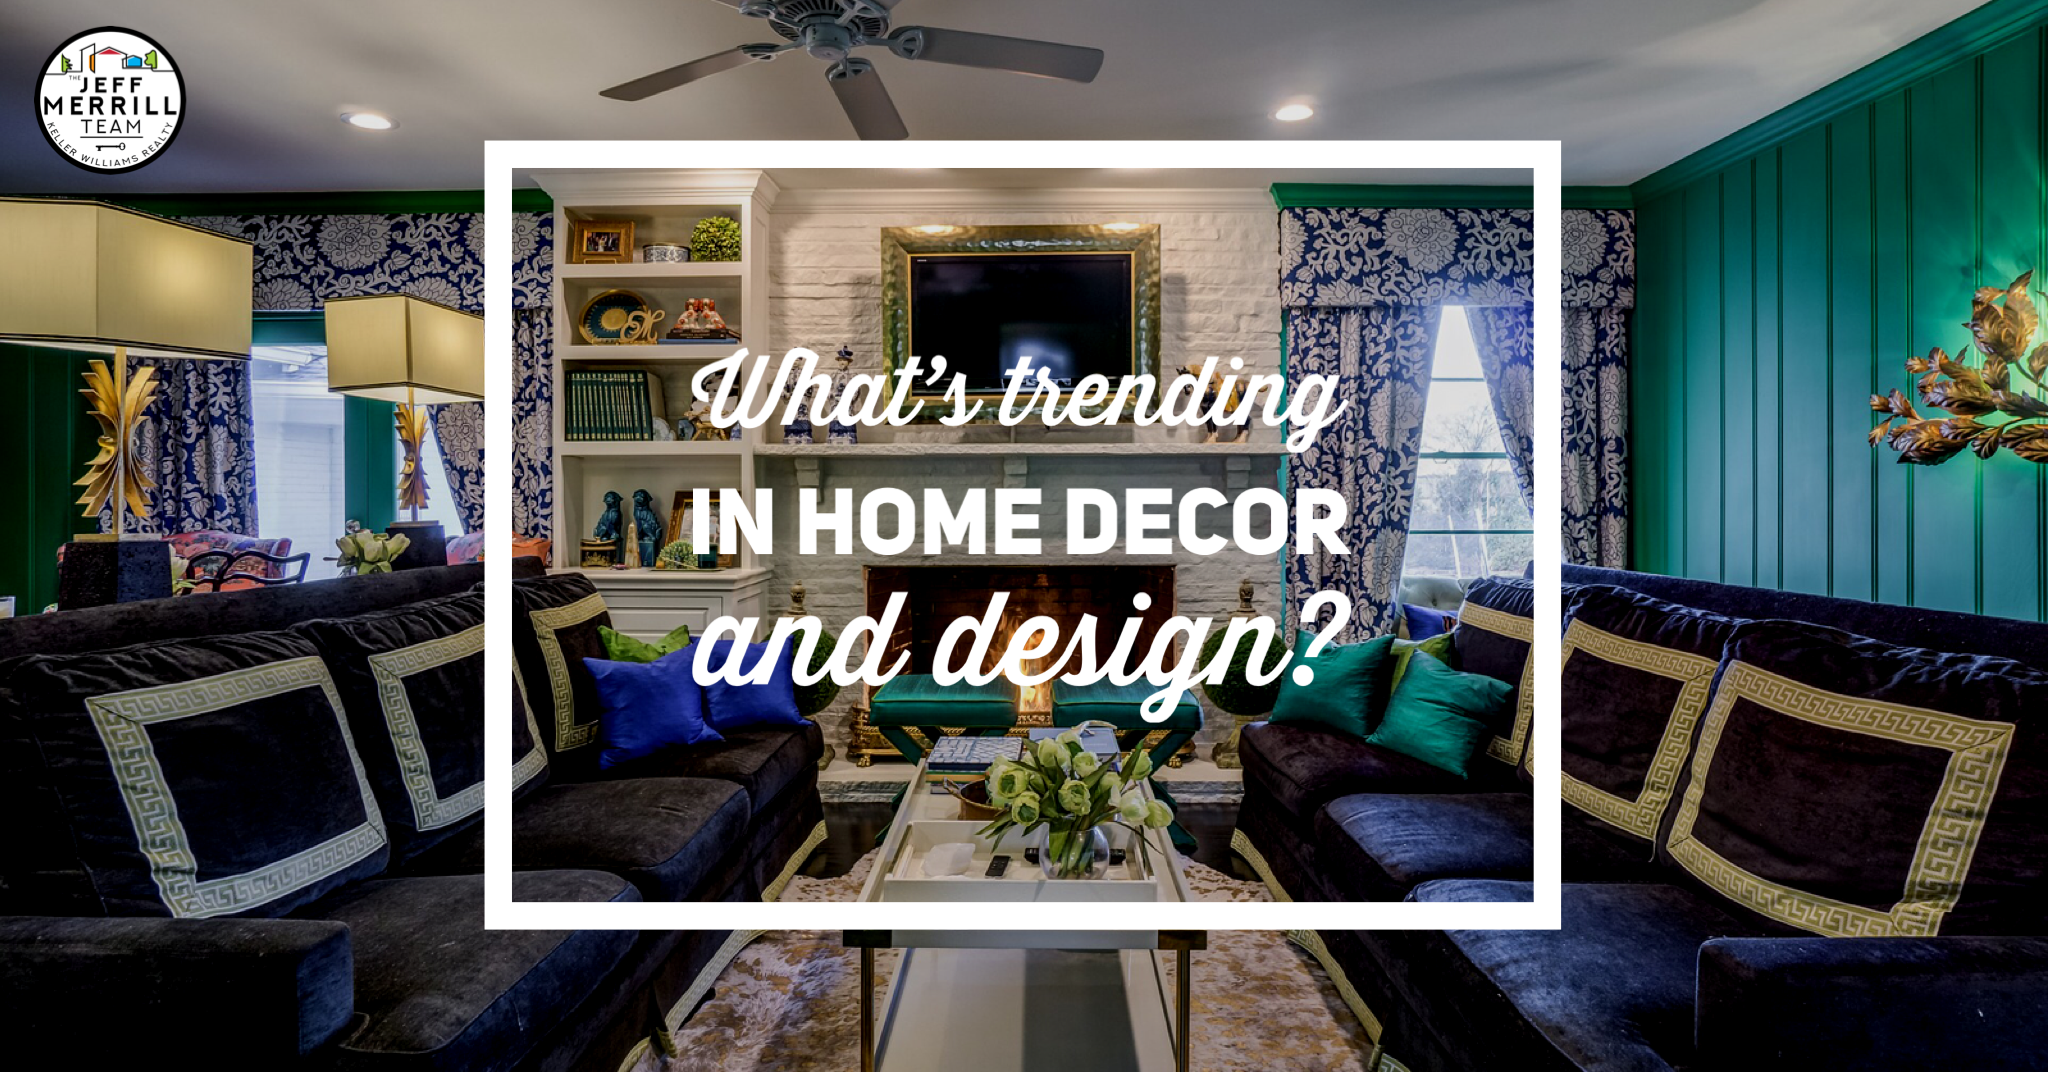 What's trending in home decor and design?